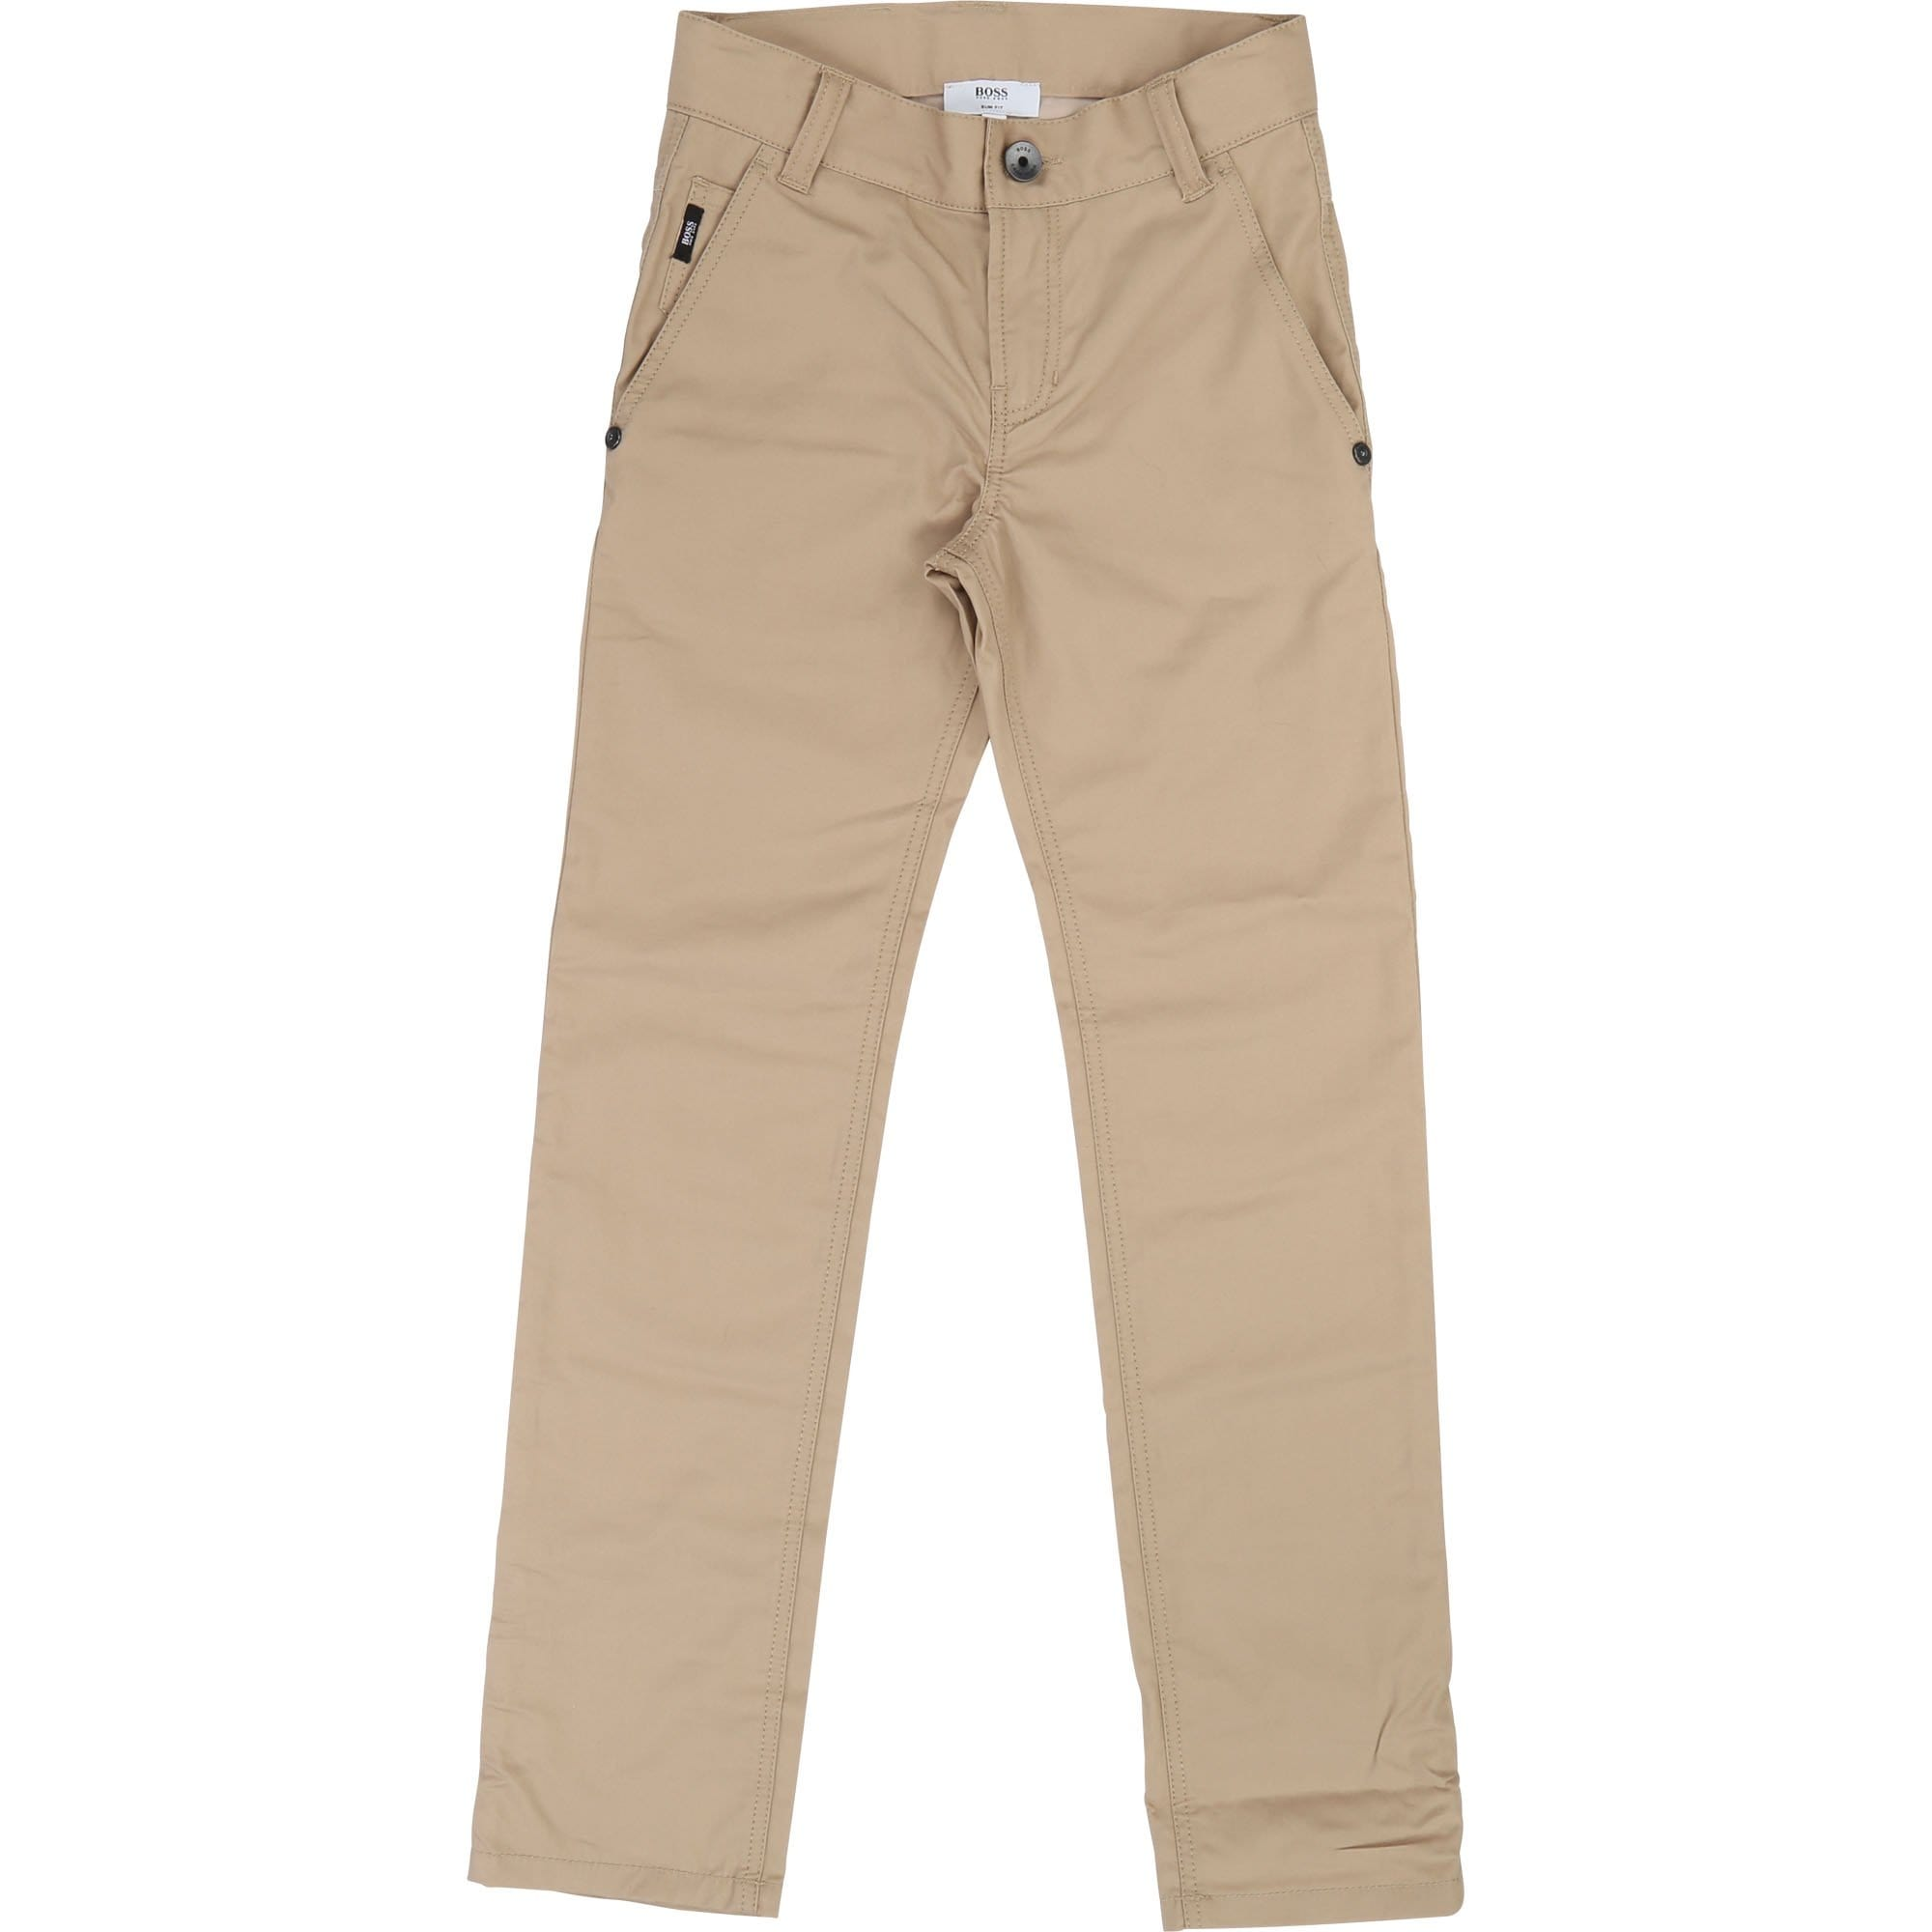 Hugo Boss Chino Pants (4703983566979)